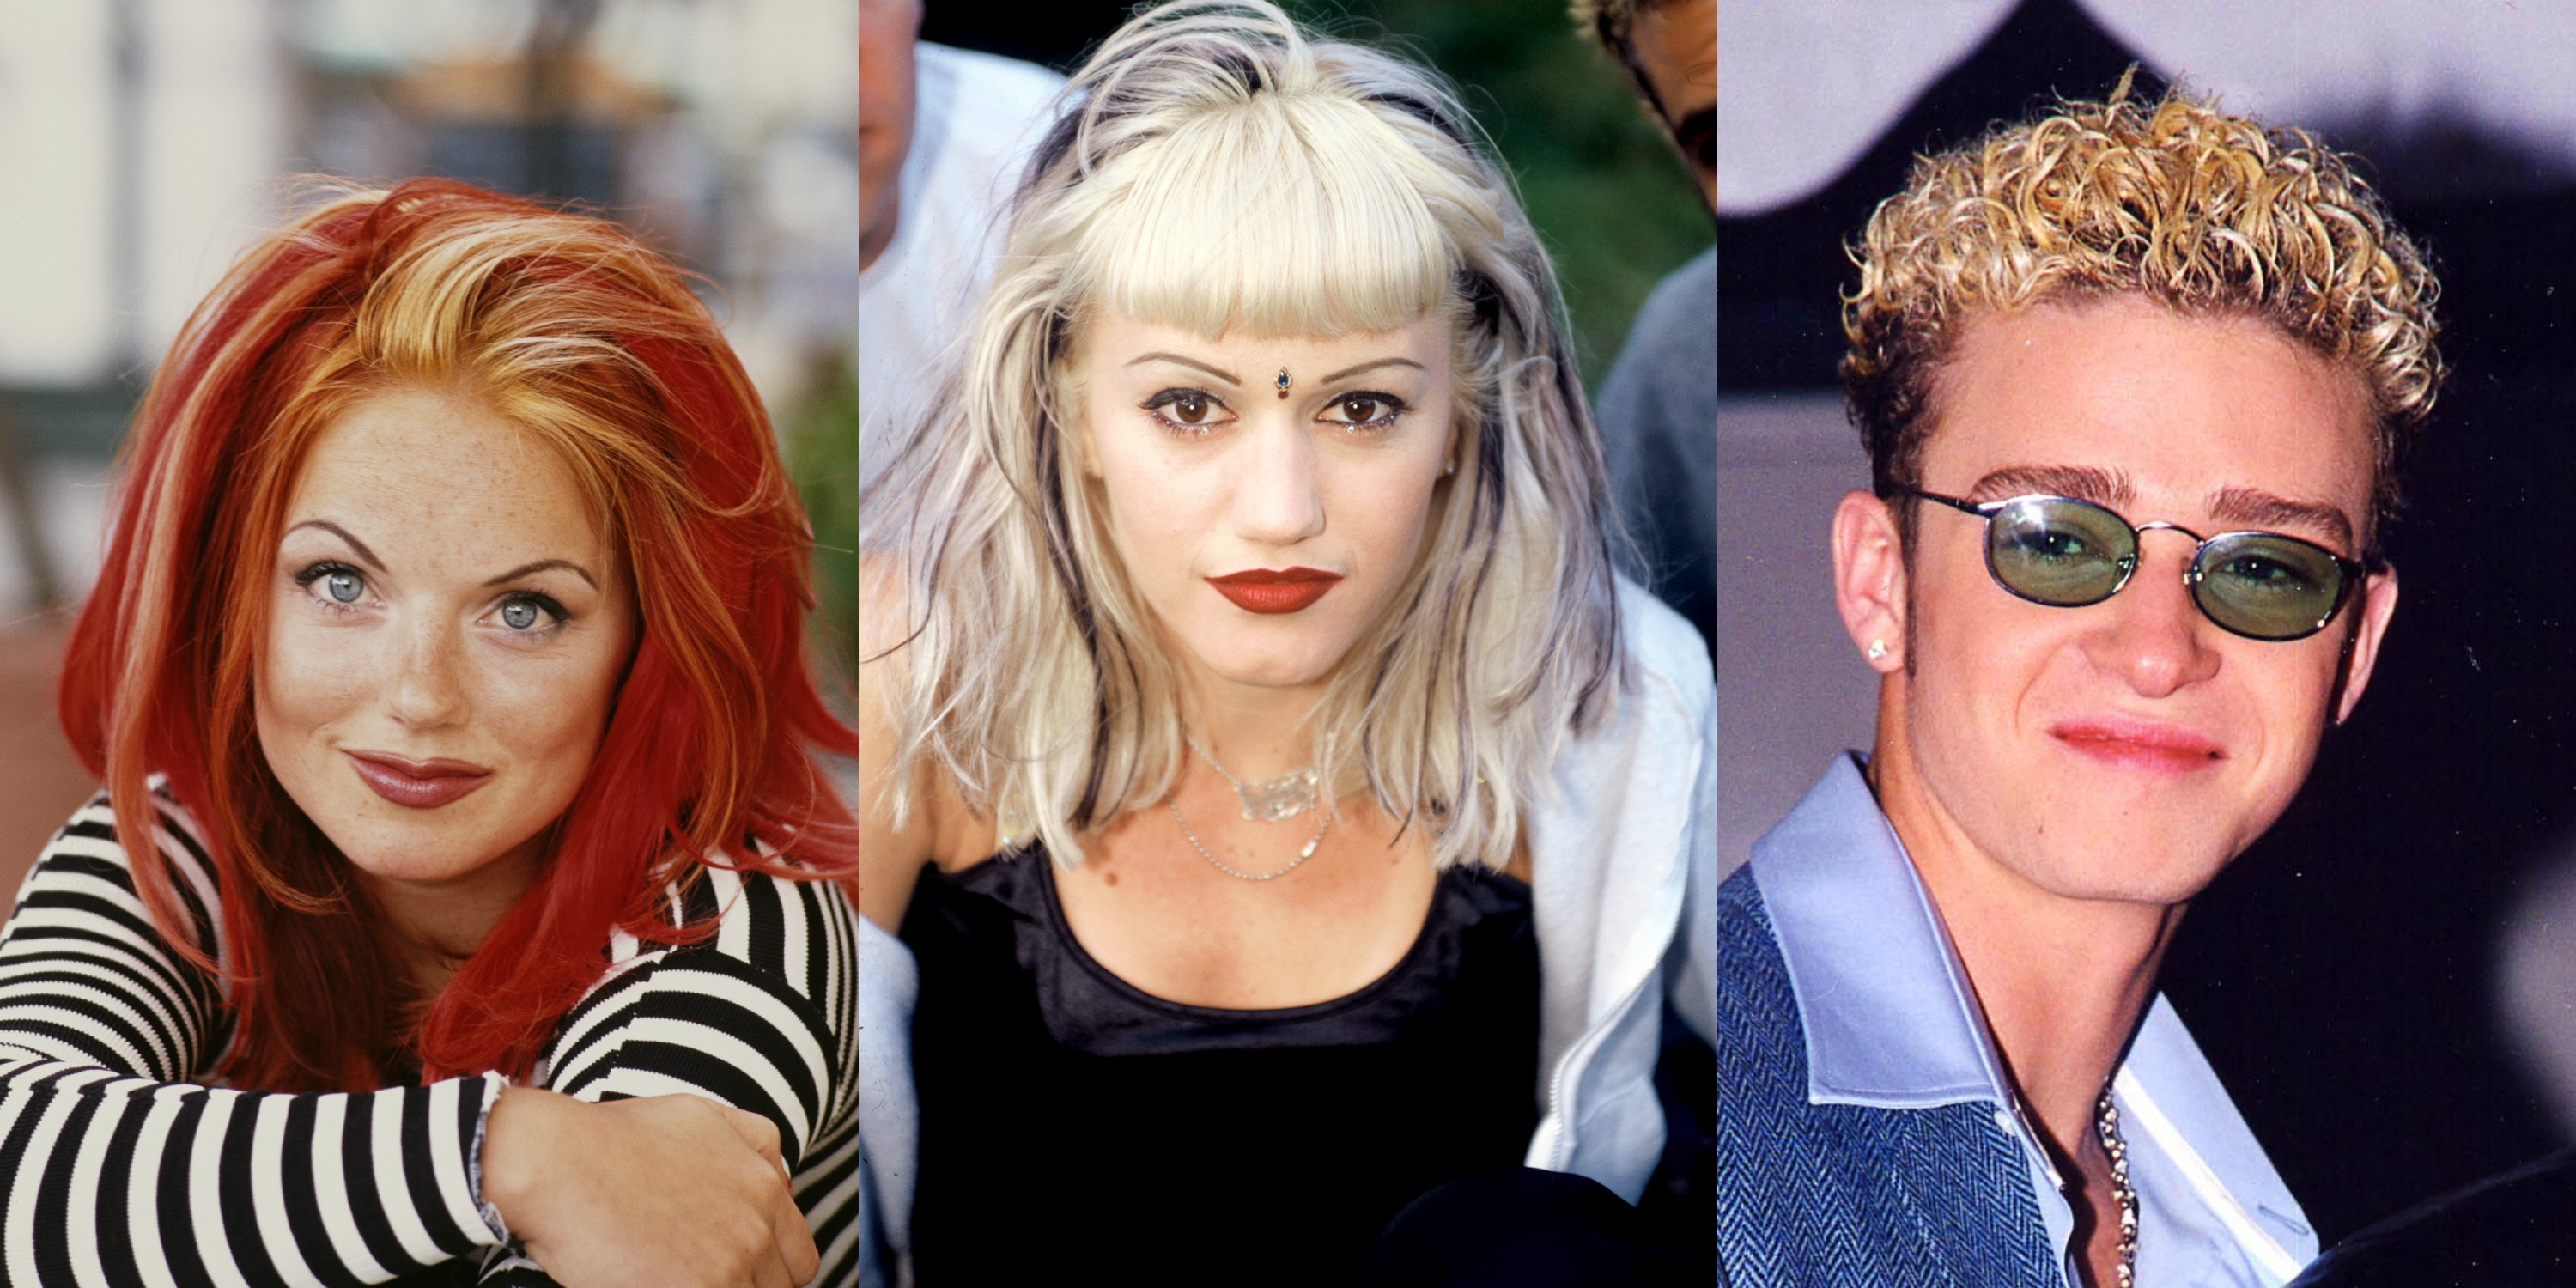 20 Embarrassing 90s Beauty Trends Bad Nineties Hair And